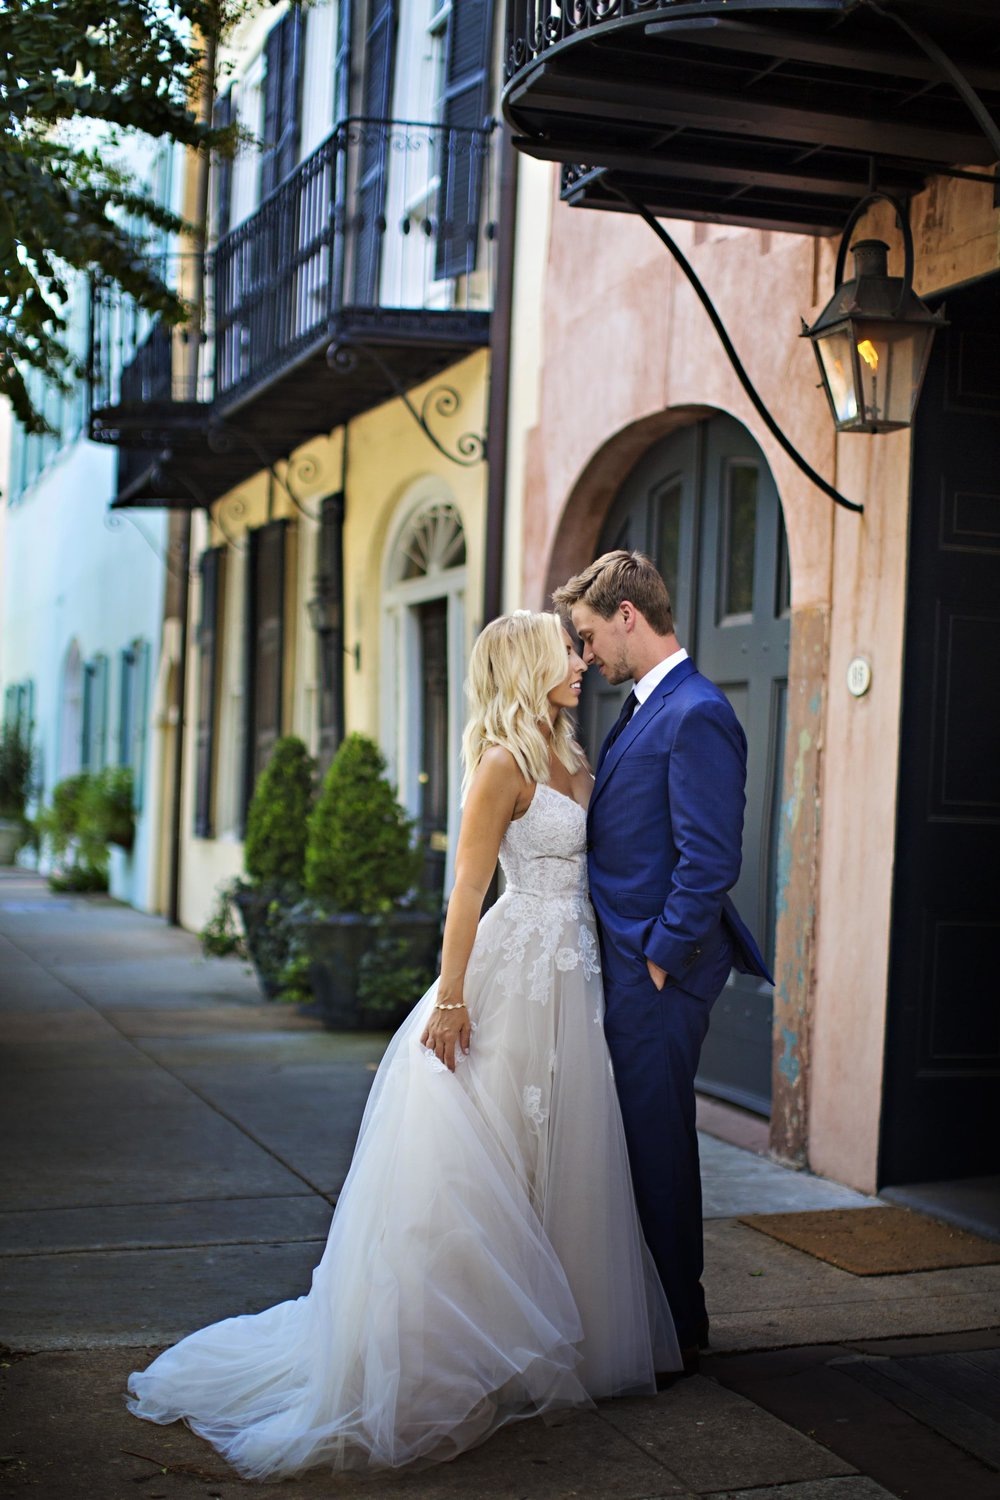 weddings-charleston08.jpg